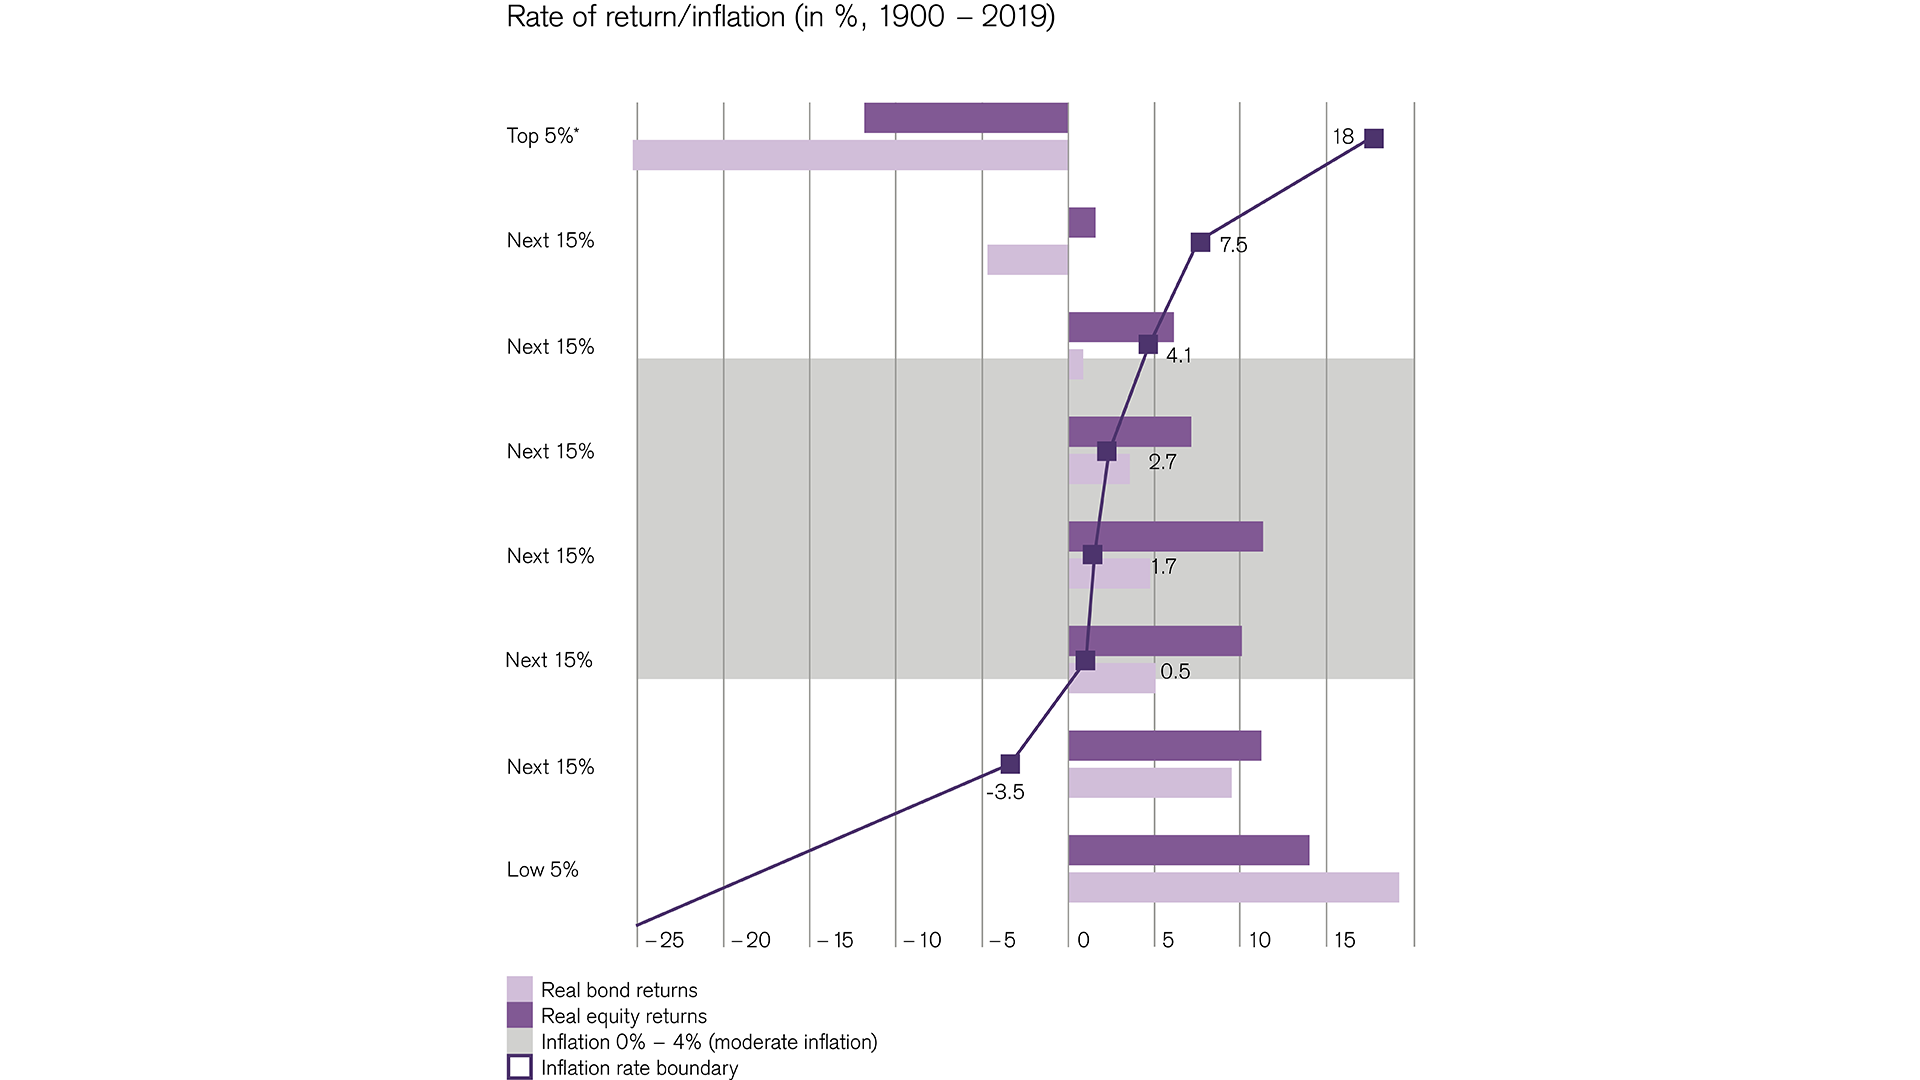 Real returns on global markets compared to inflation rates